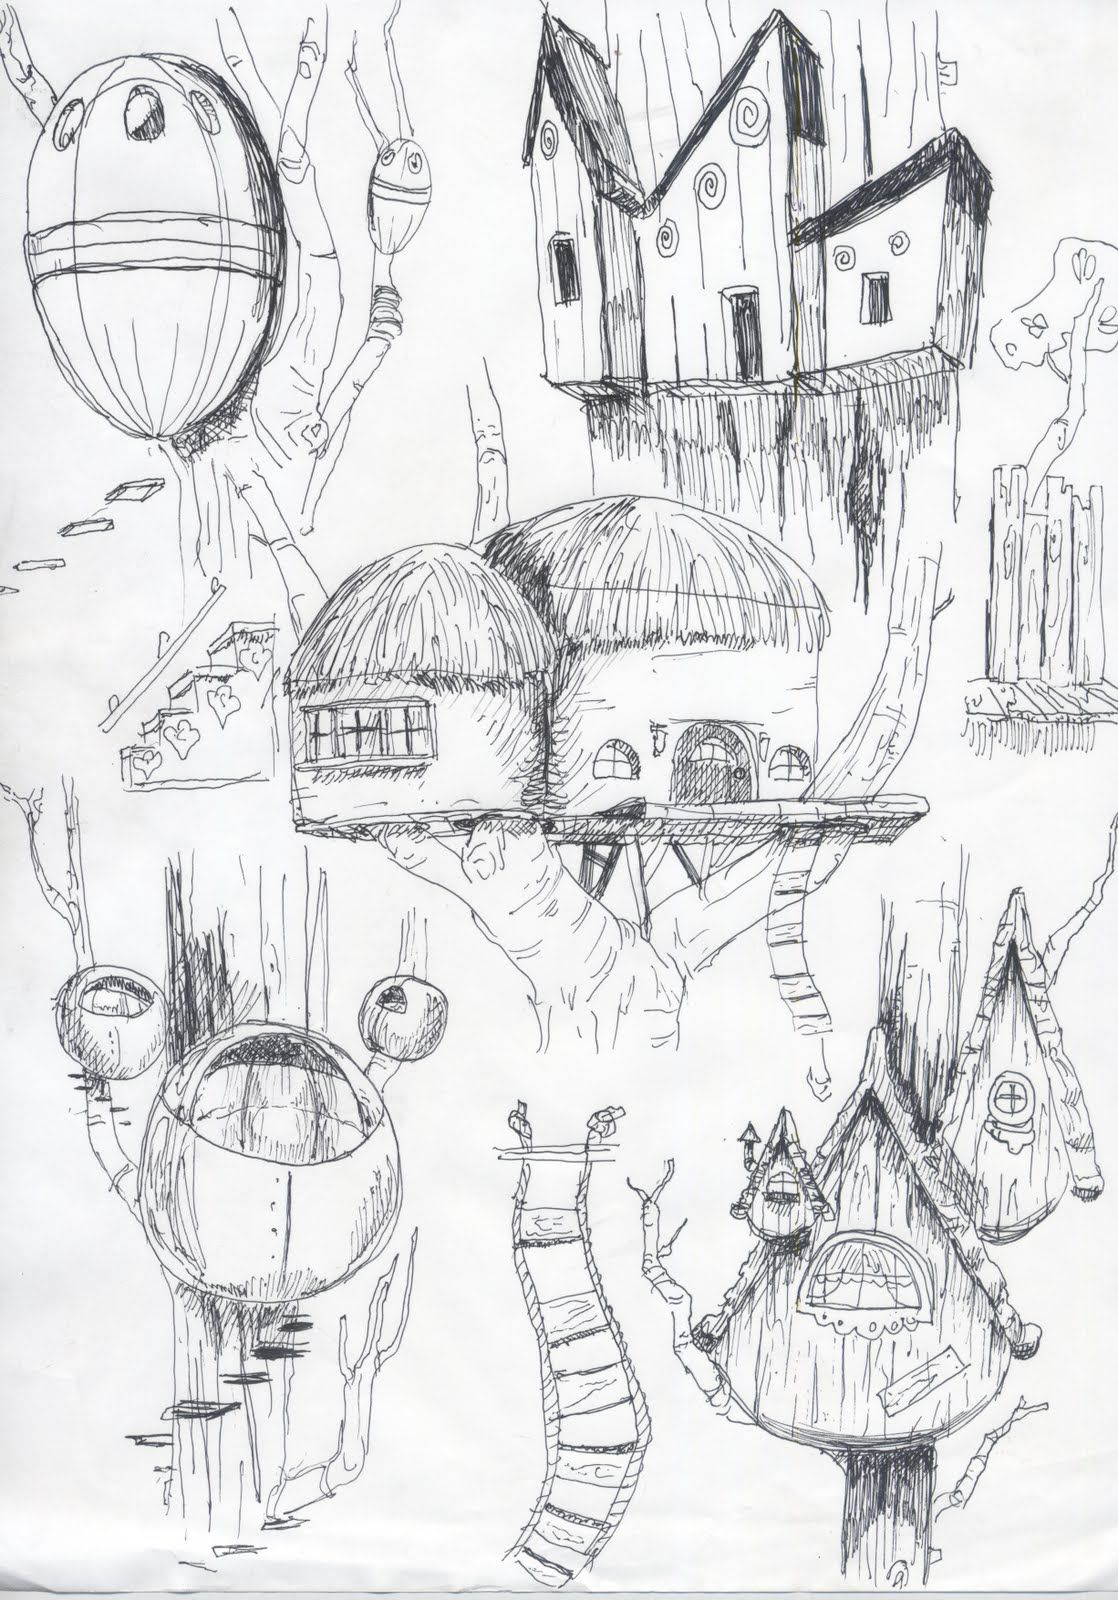 bryan sims: creative perspective part 1 treehouse thumbnails | archi